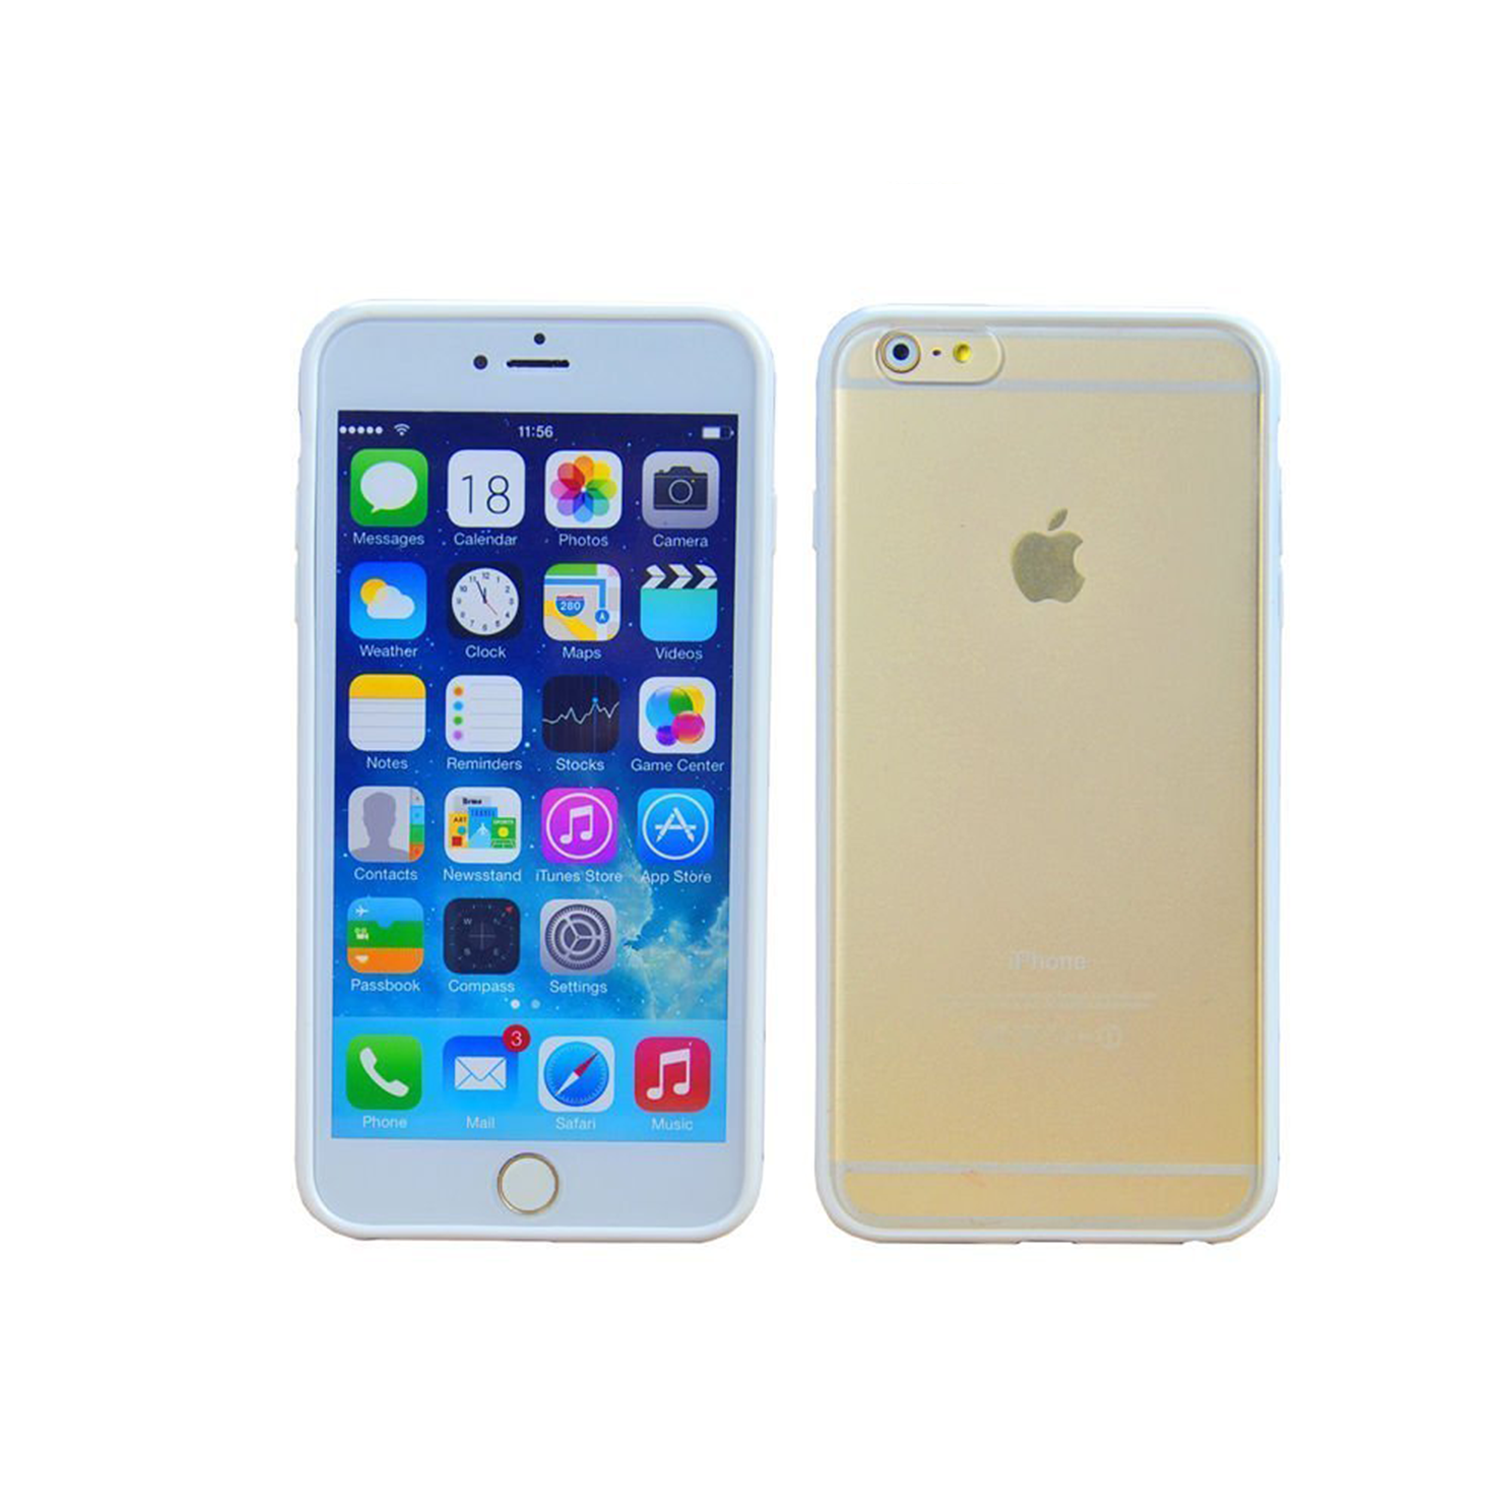 Iphone 5 back png apple iphone 5 16gb - Iphone 6 Plus White Minimalist Hard Shell Protective Case With Clear Frosted Back